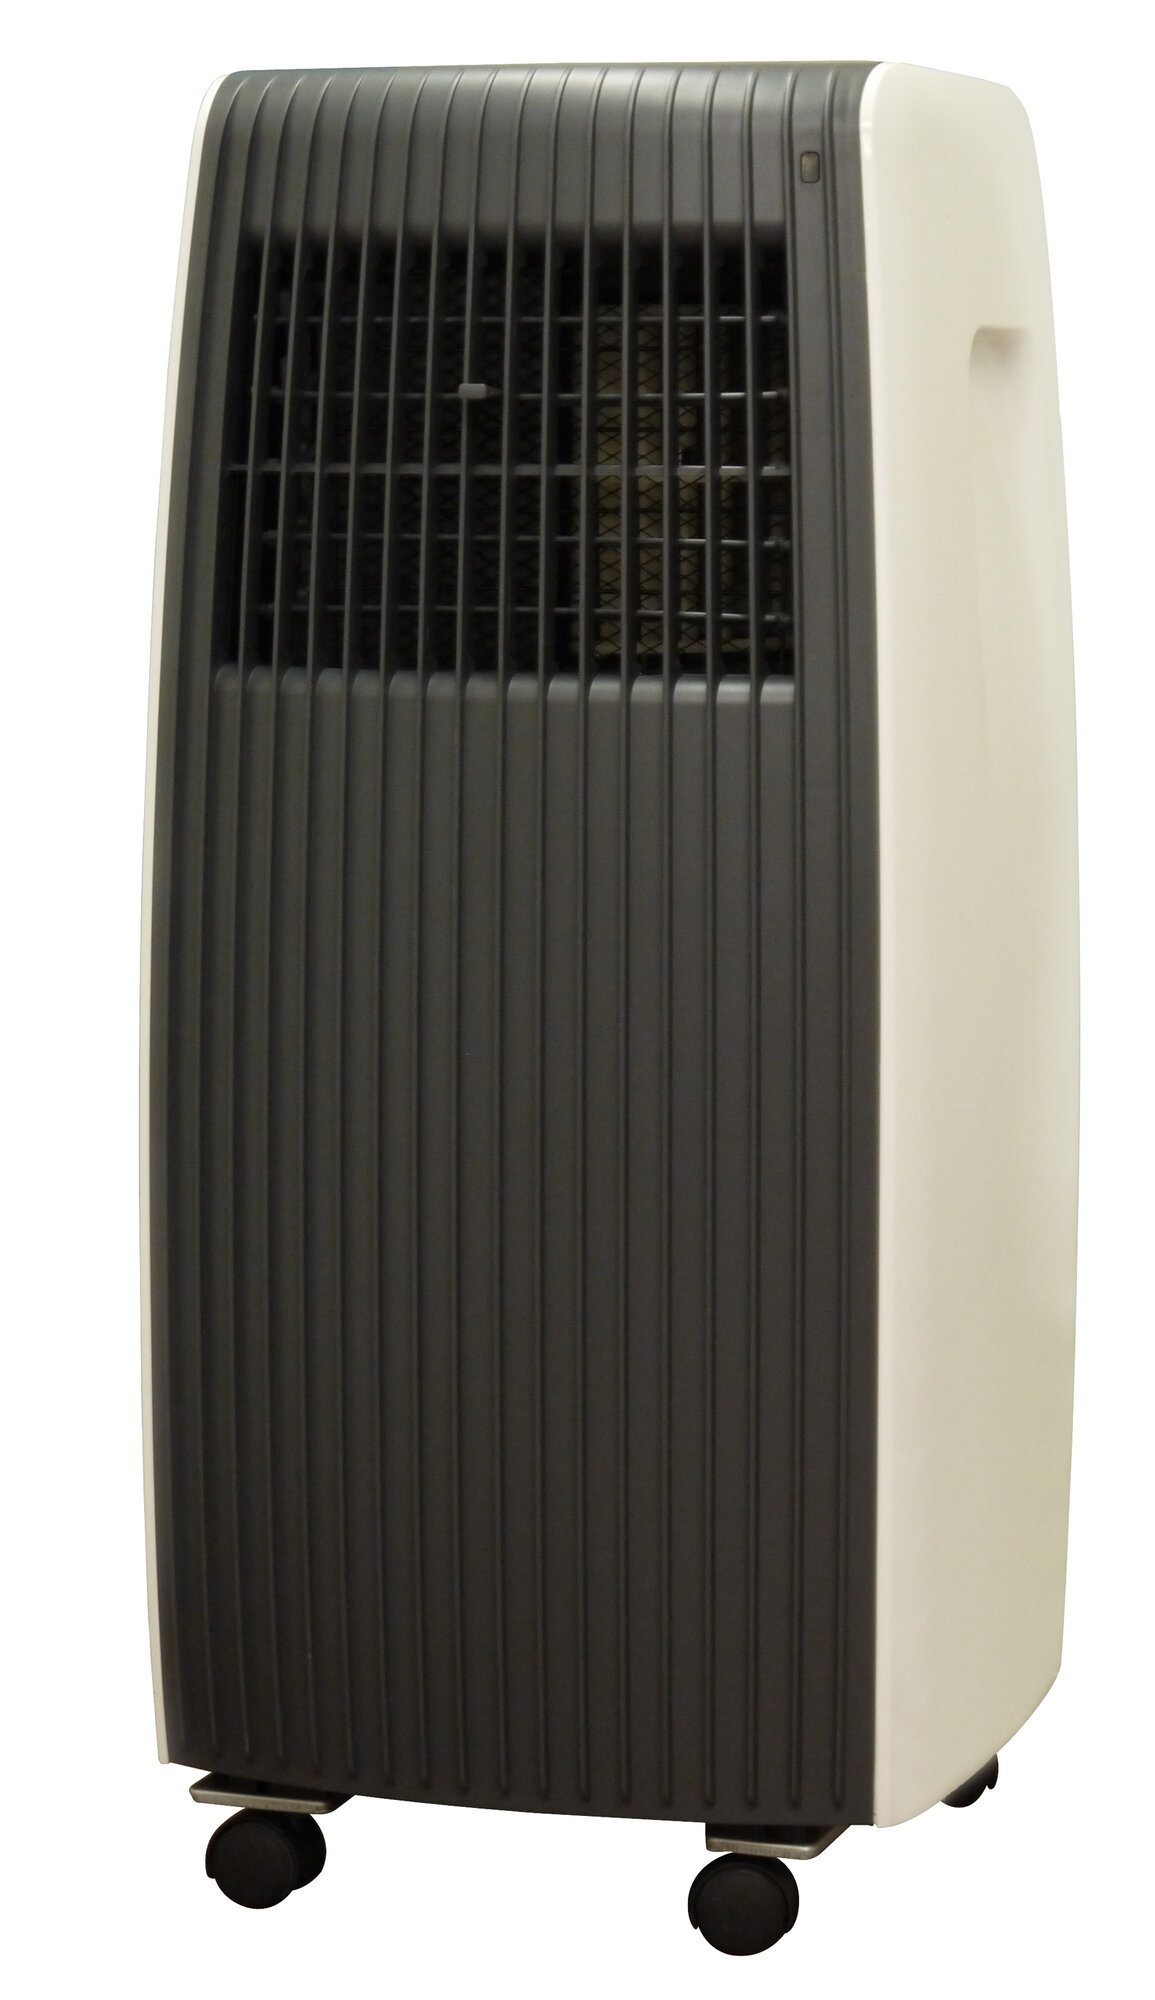 Sunpentown Portable 10 000 BTU Air Conditioner 876840005280 eBay #7B7550